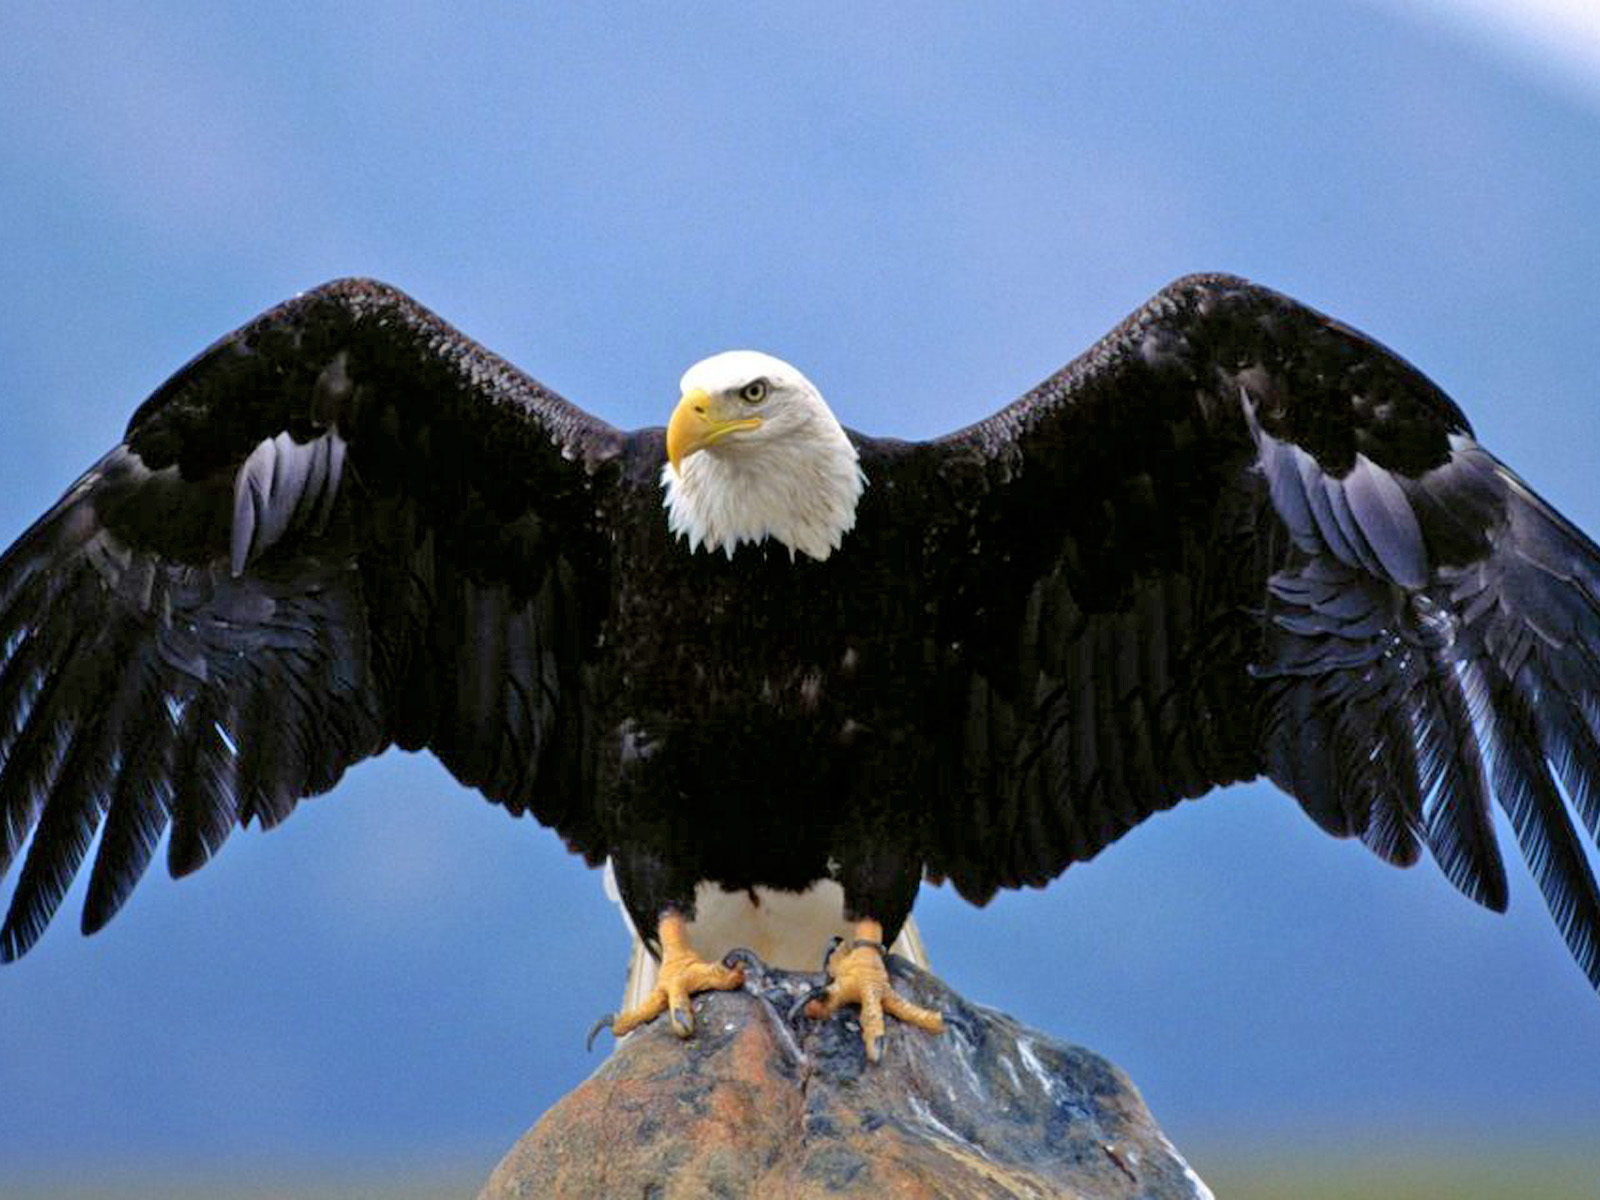 Hd Car Wallpapers For Android Mobile Full Screen Bald Eagle Spread Wings Desktop Hd Wallpaper For Pc Tablet